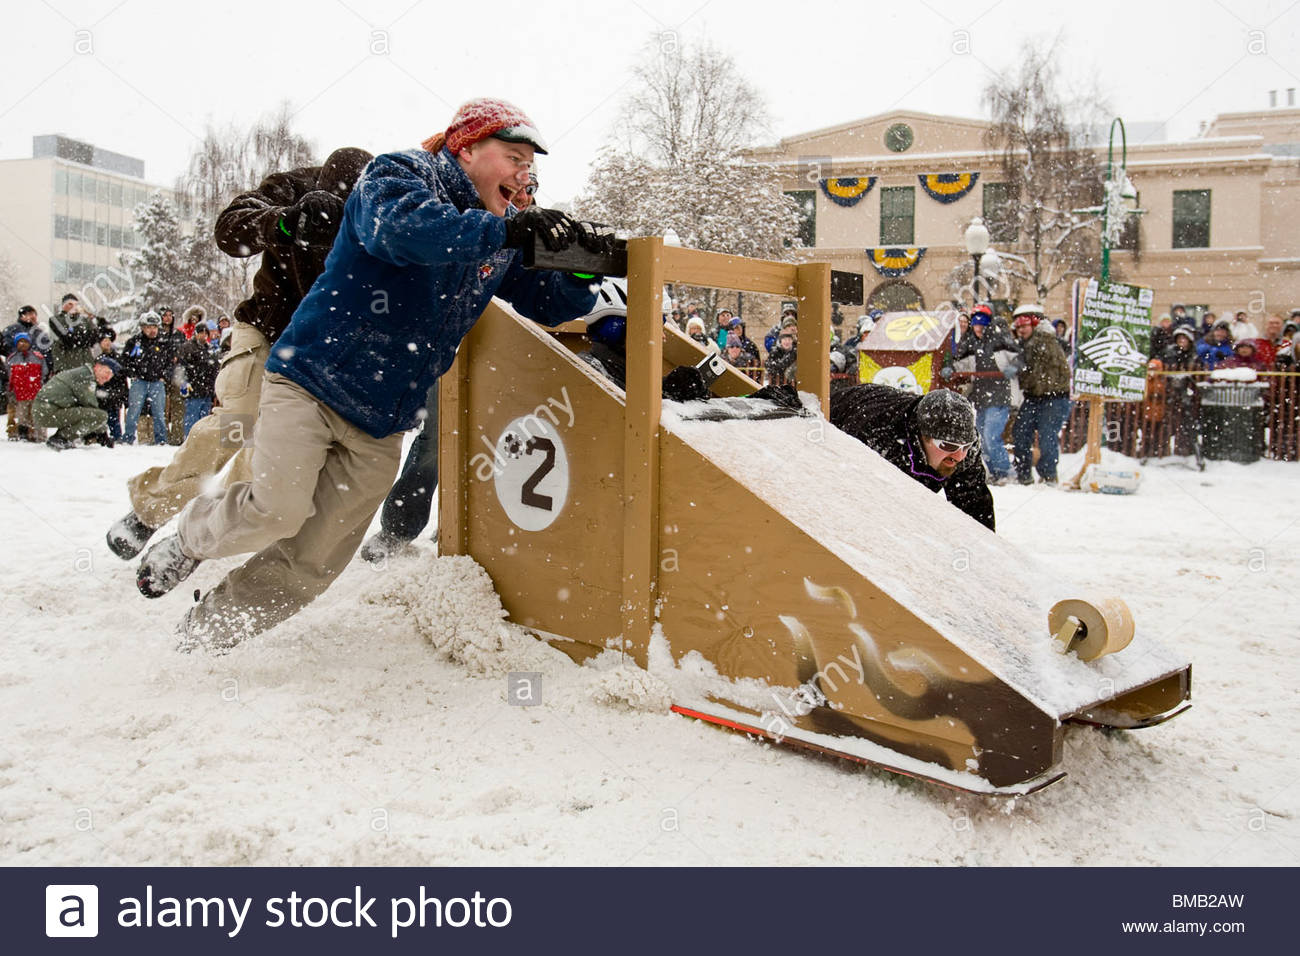 Alaska, Anchorage. Fur Rondezvous winter carnival. Outhouse races. - Stock Image